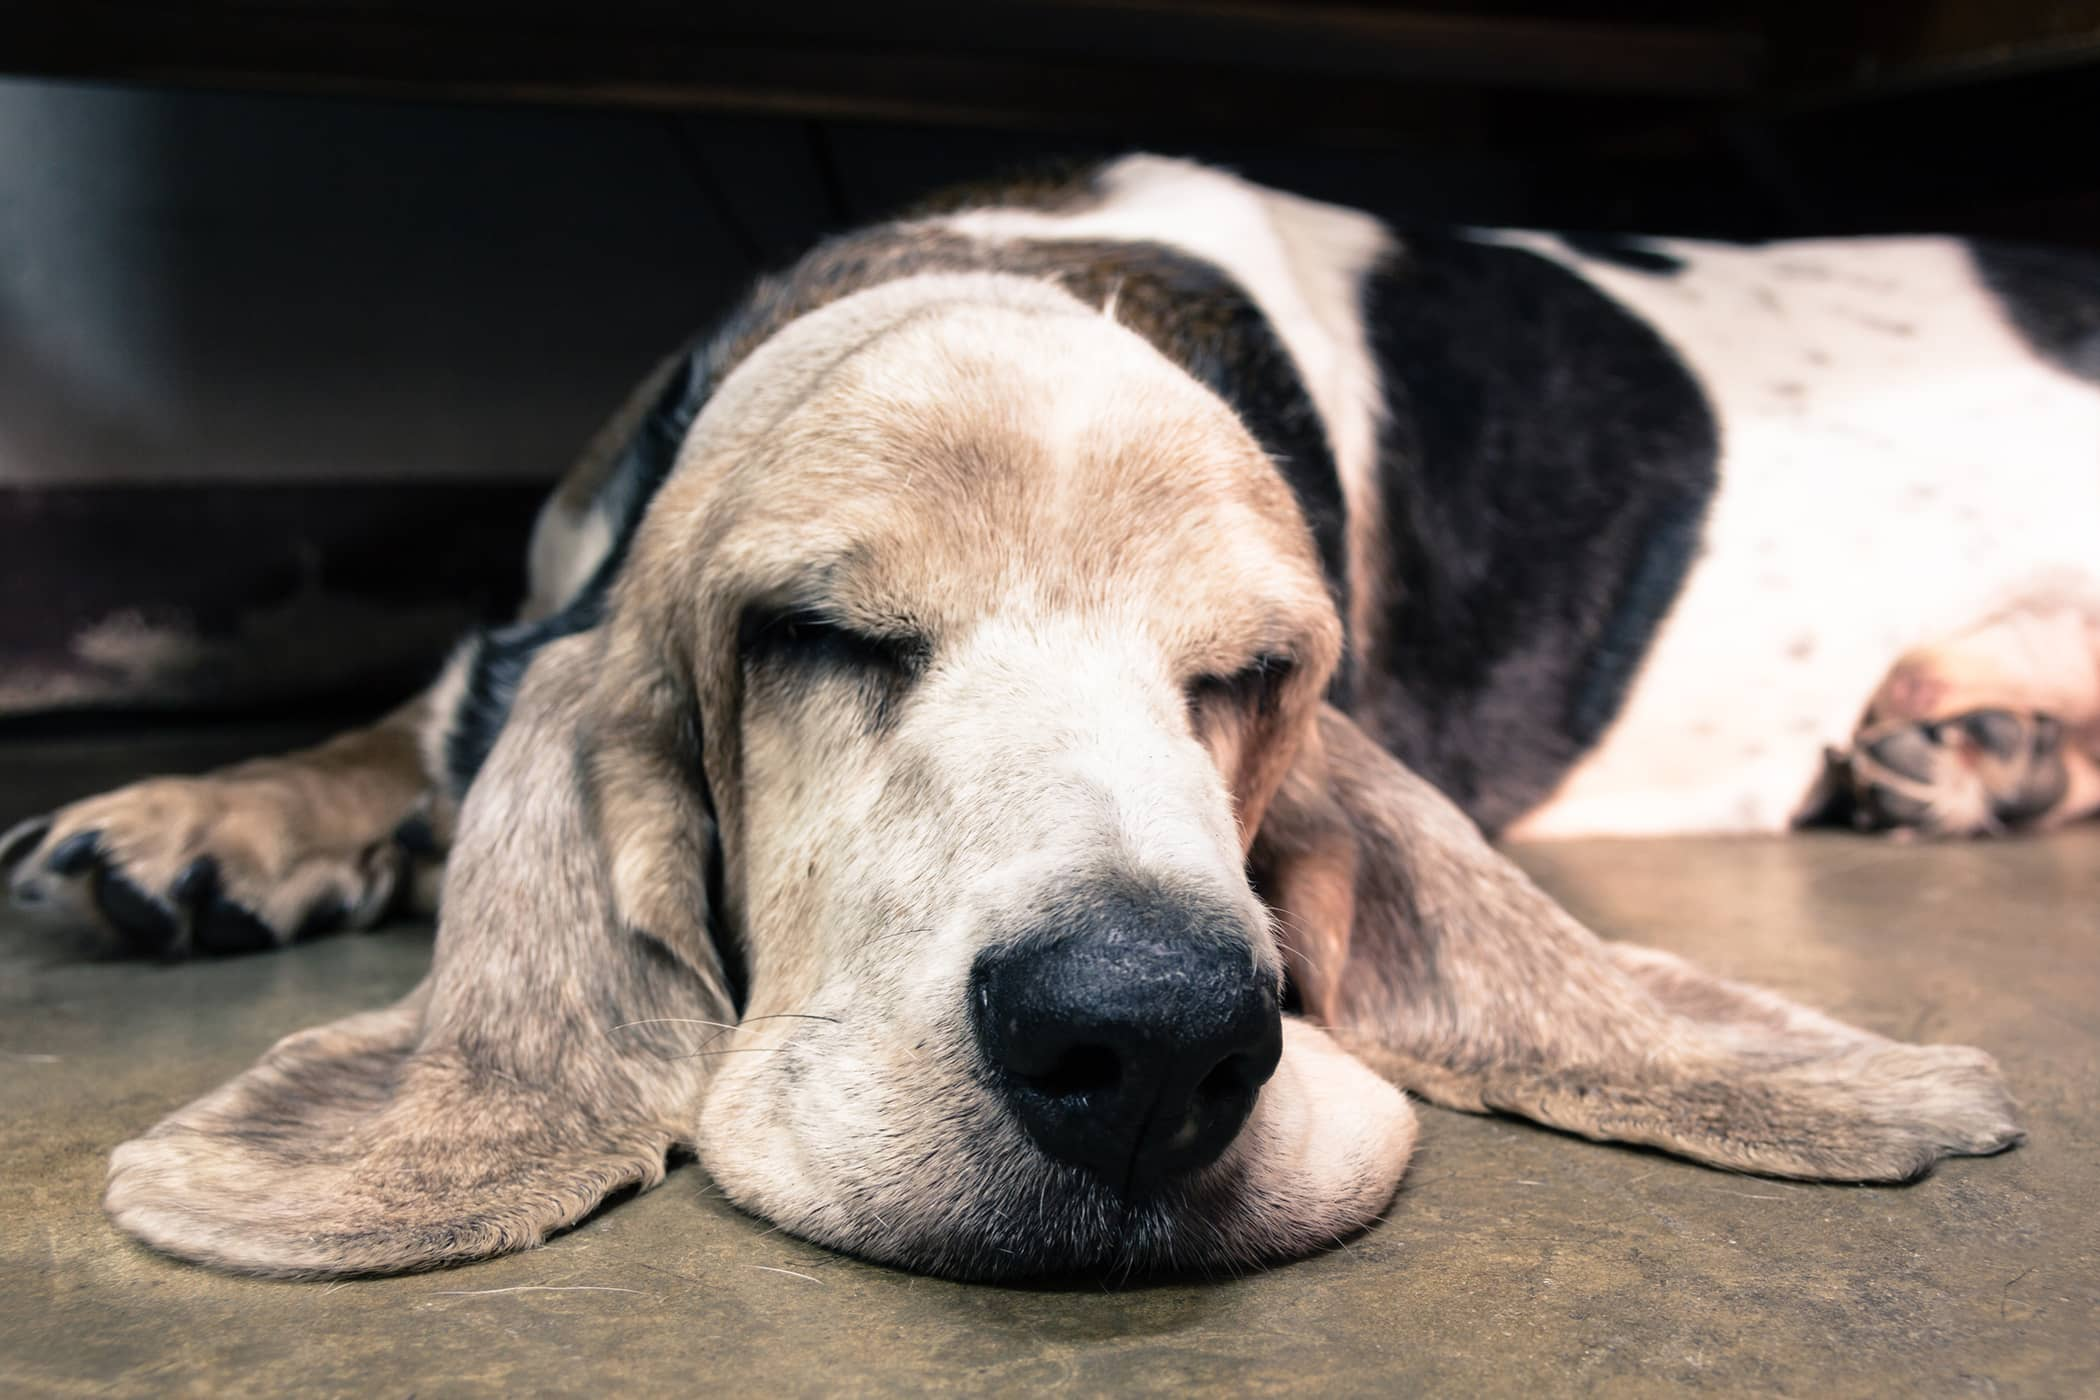 Retained Placenta Removal in Dogs